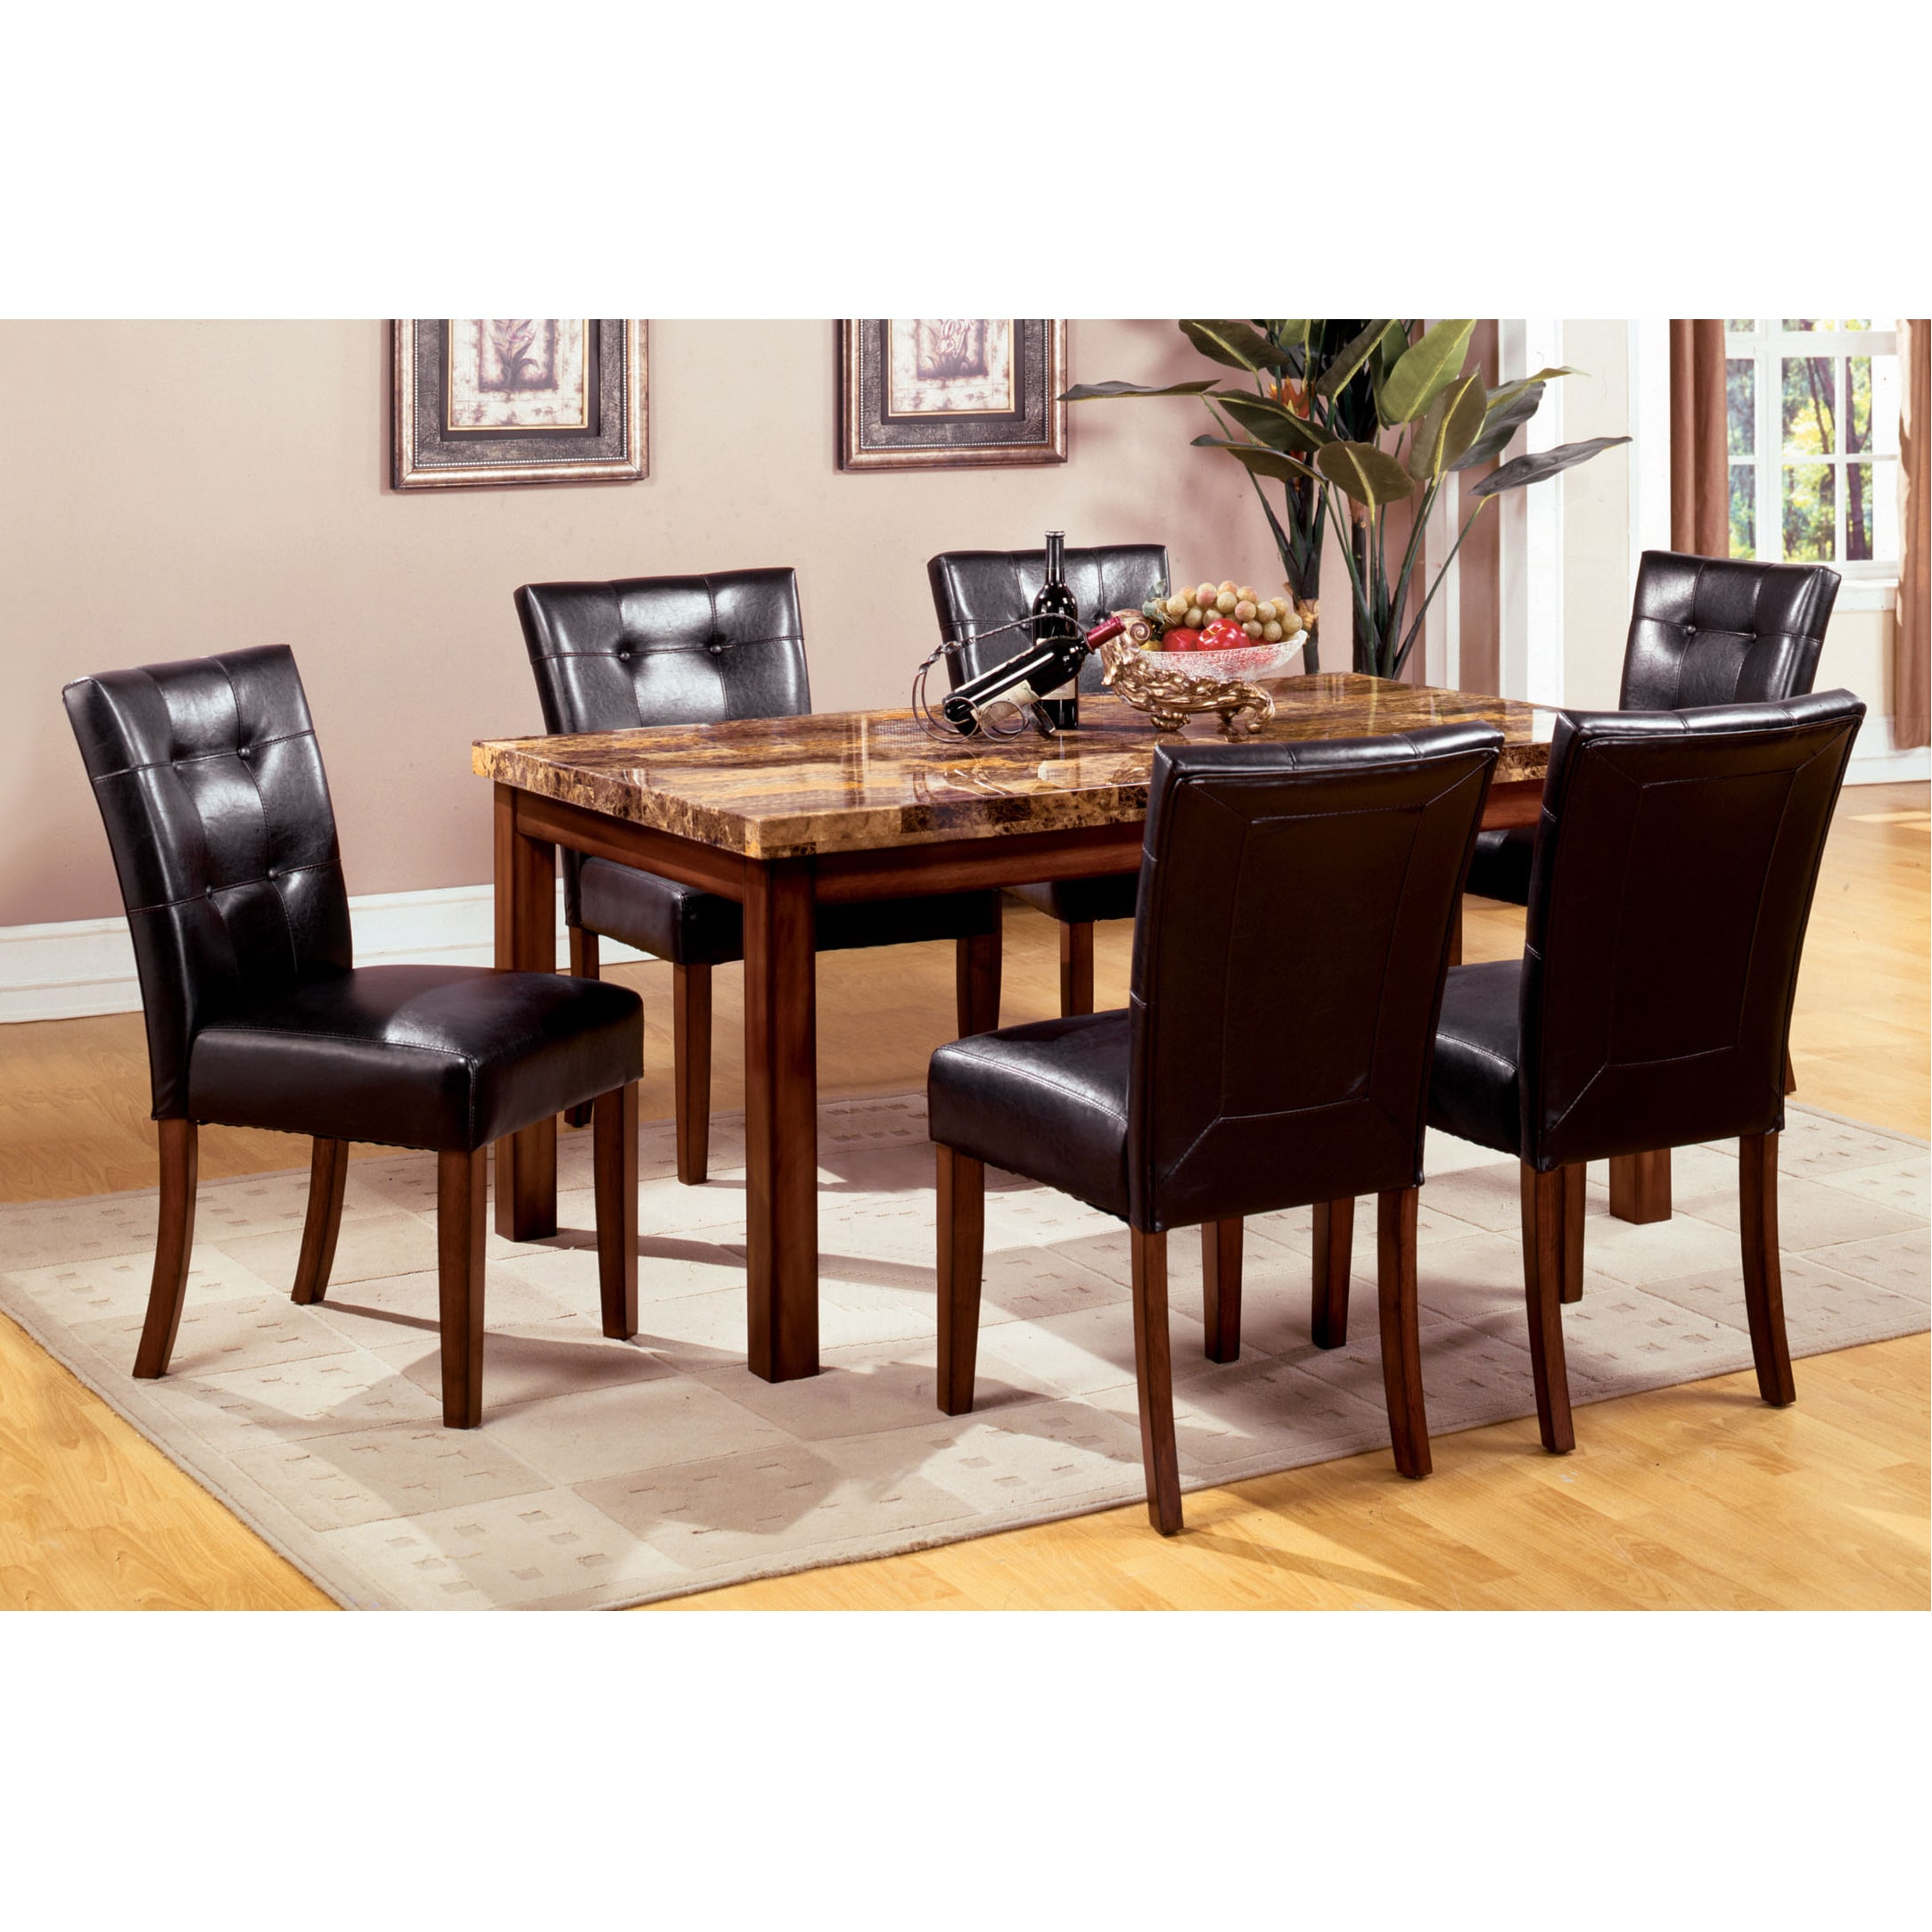 Furniture of America Tamerithe 7-Piece Faux Marble Dining...